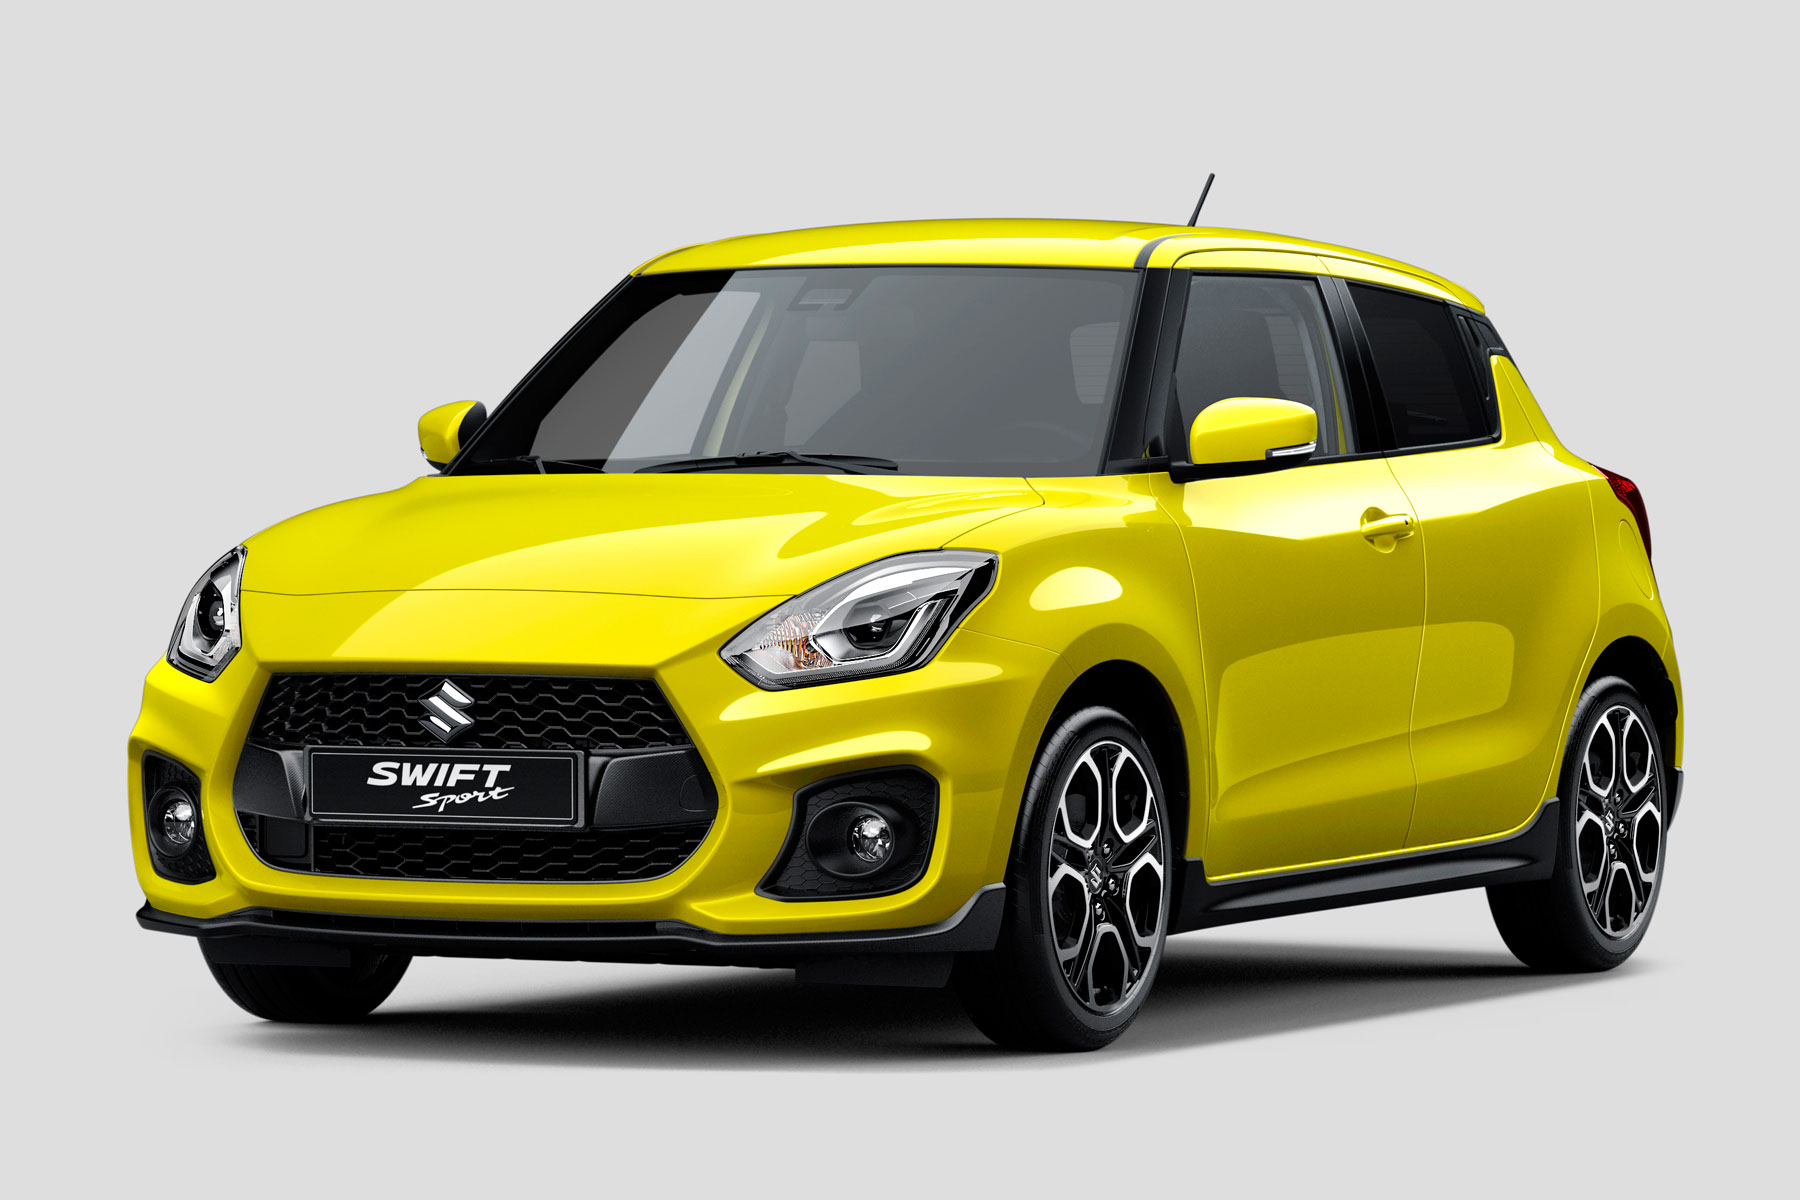 Confirmed: Suzuki Swift Sport will be revealed at Frankfurt